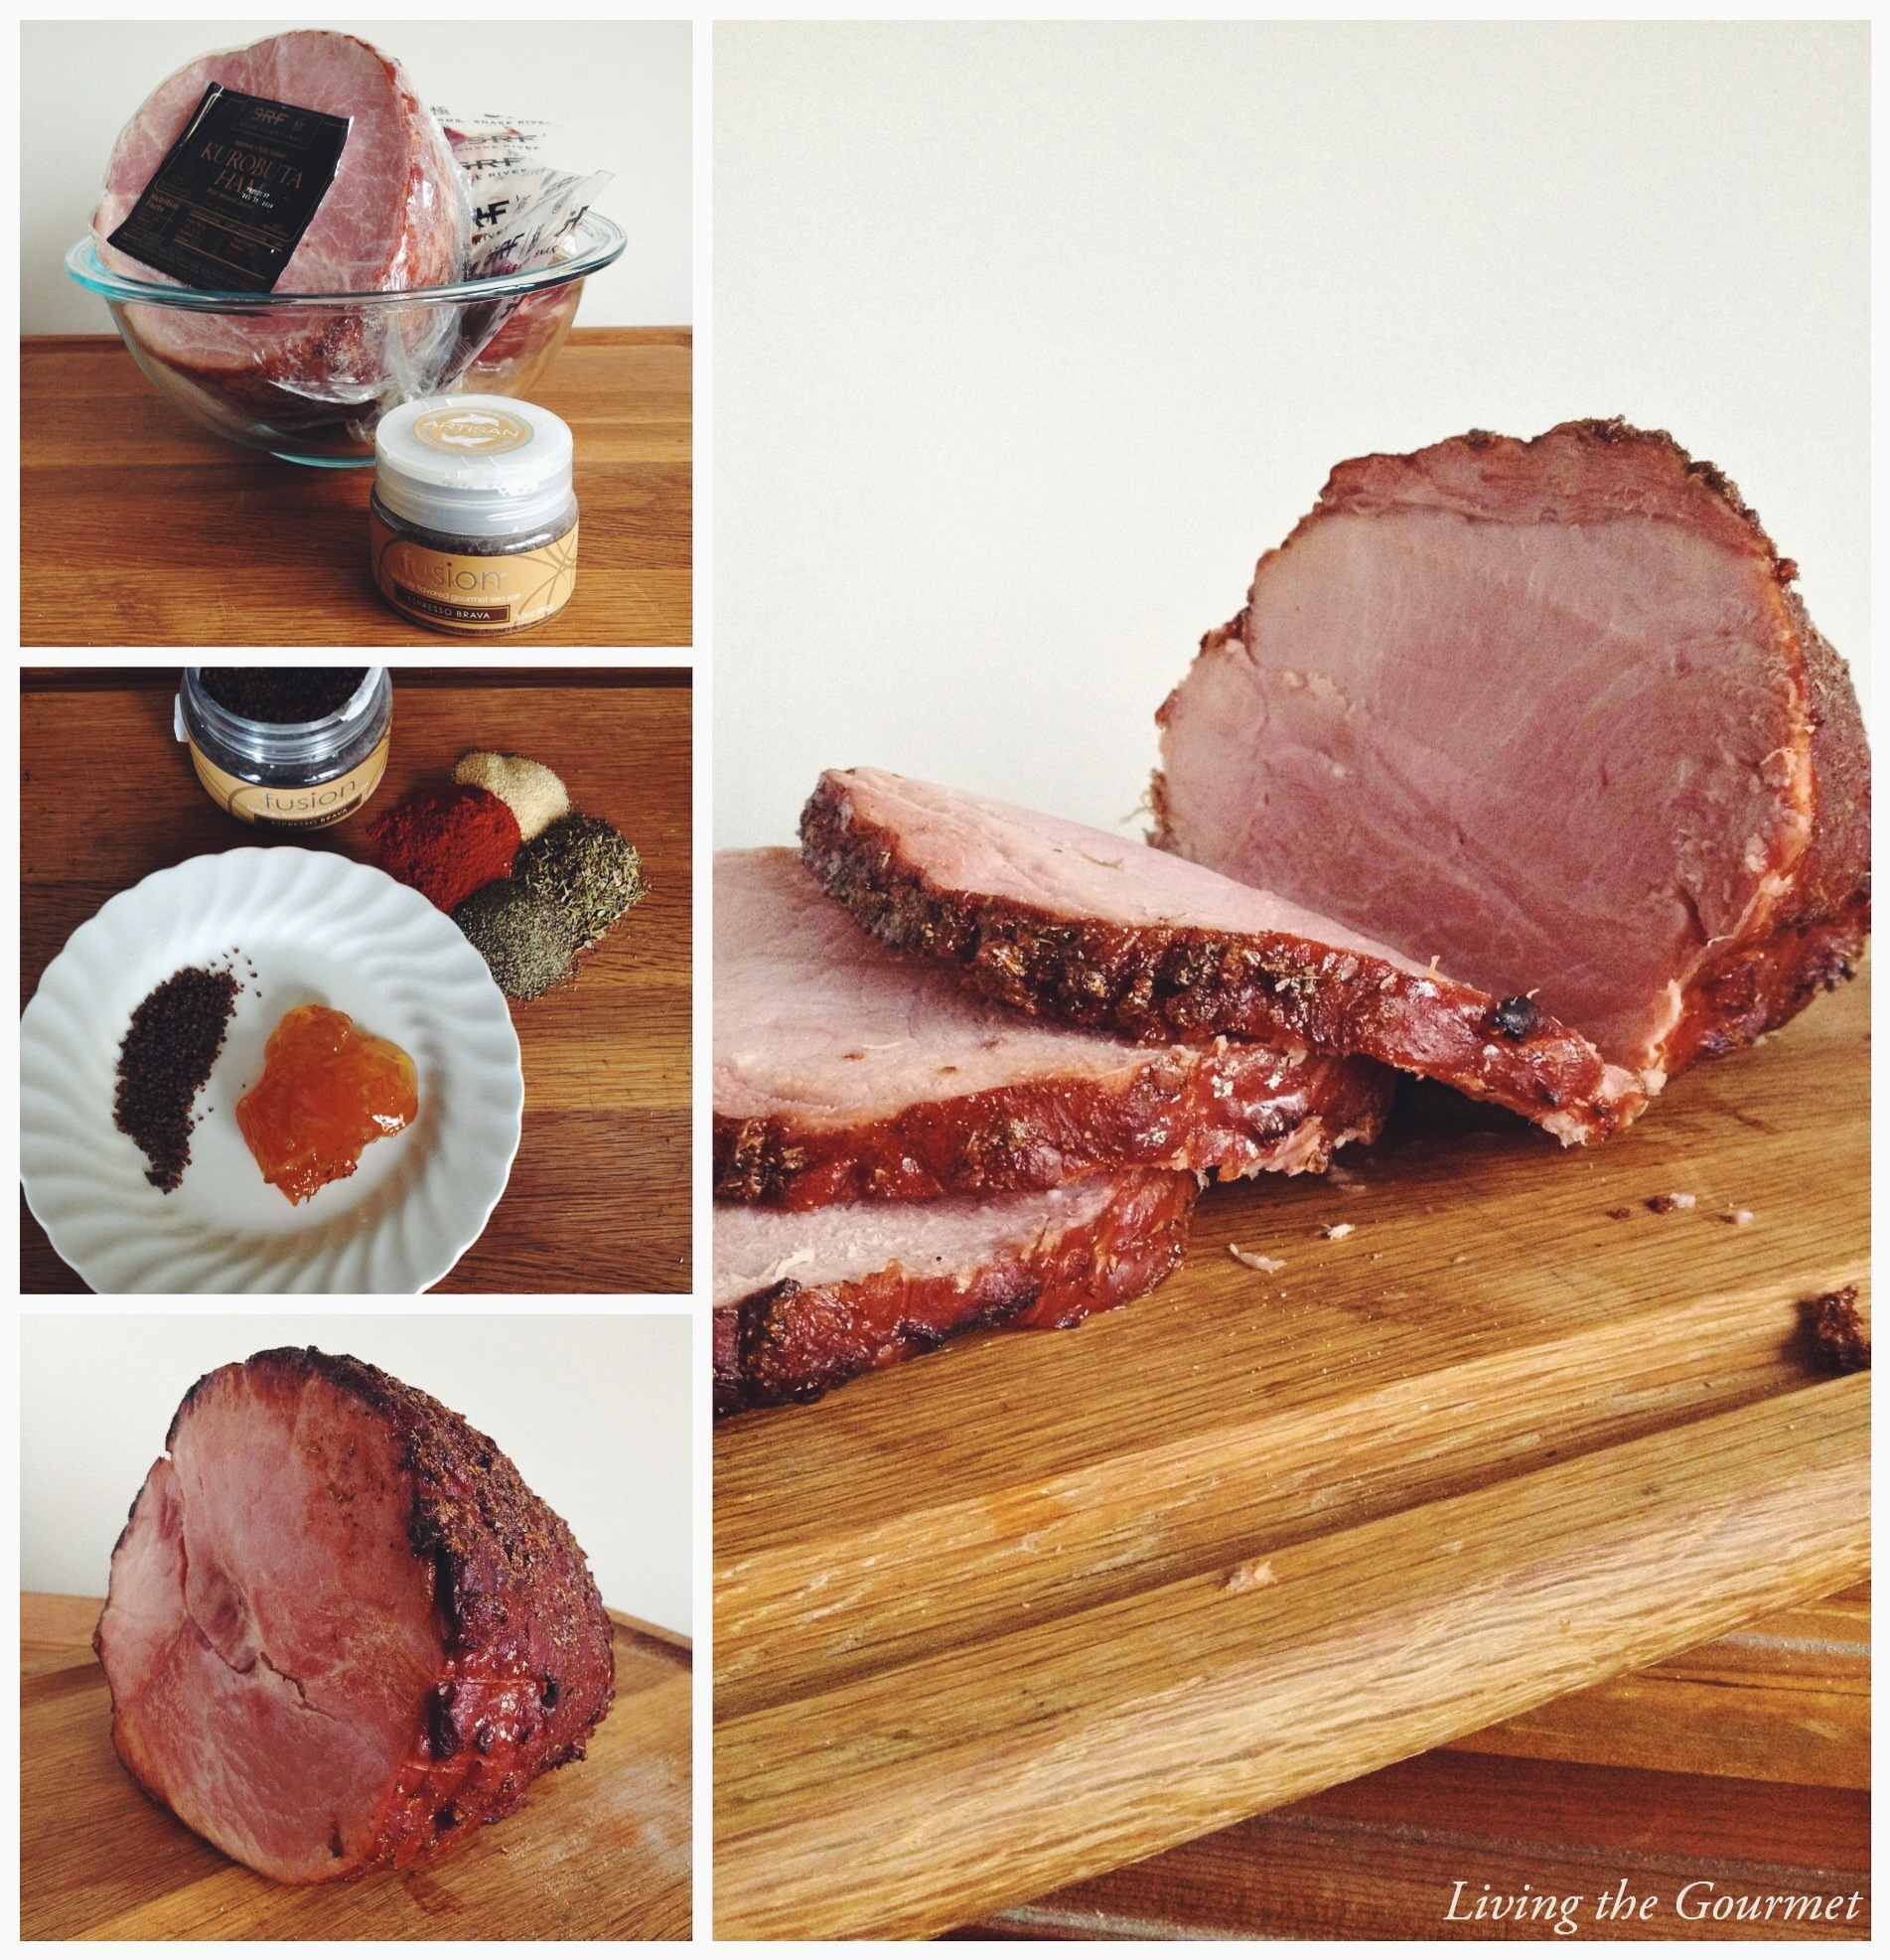 Living the Gourmet: Espresso Brava Filet Mignon & Kurobuta Ham